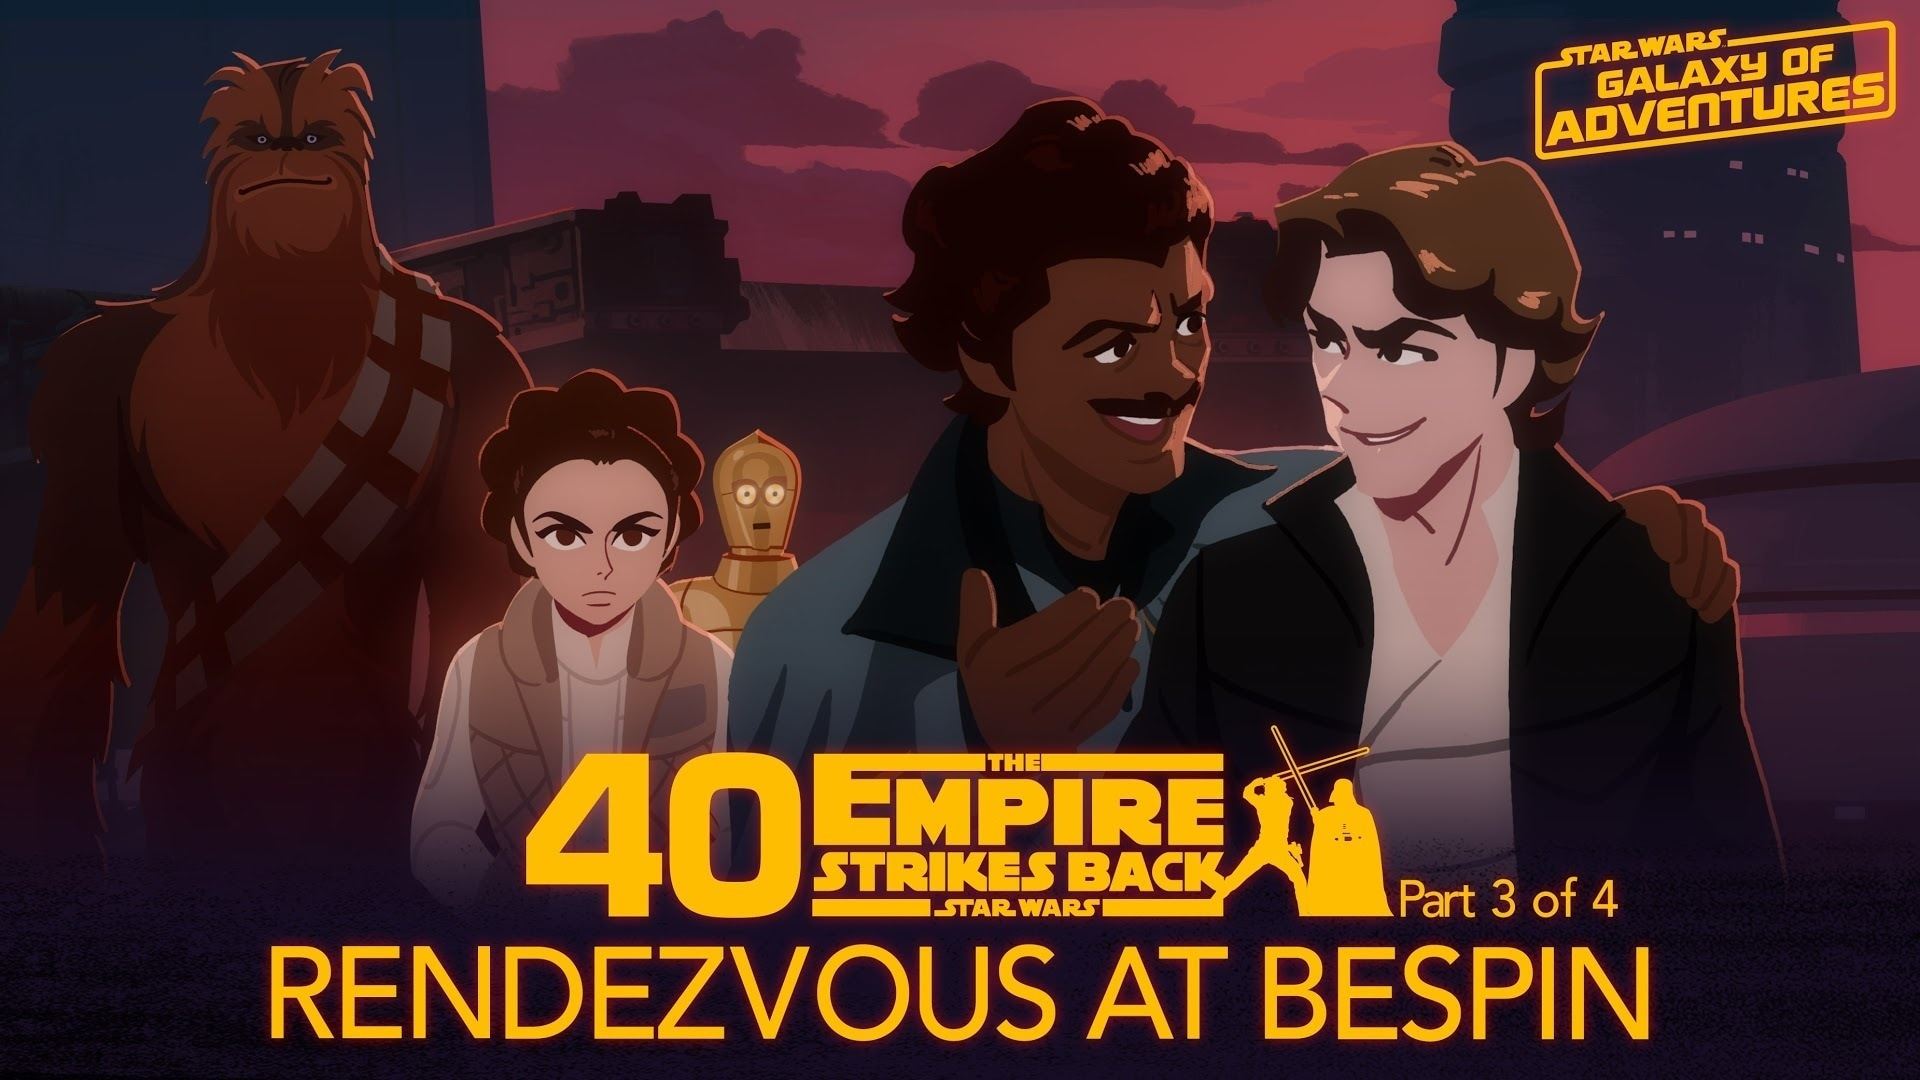 Rendezvous at Bespin | Star Wars Galaxy of Adventures